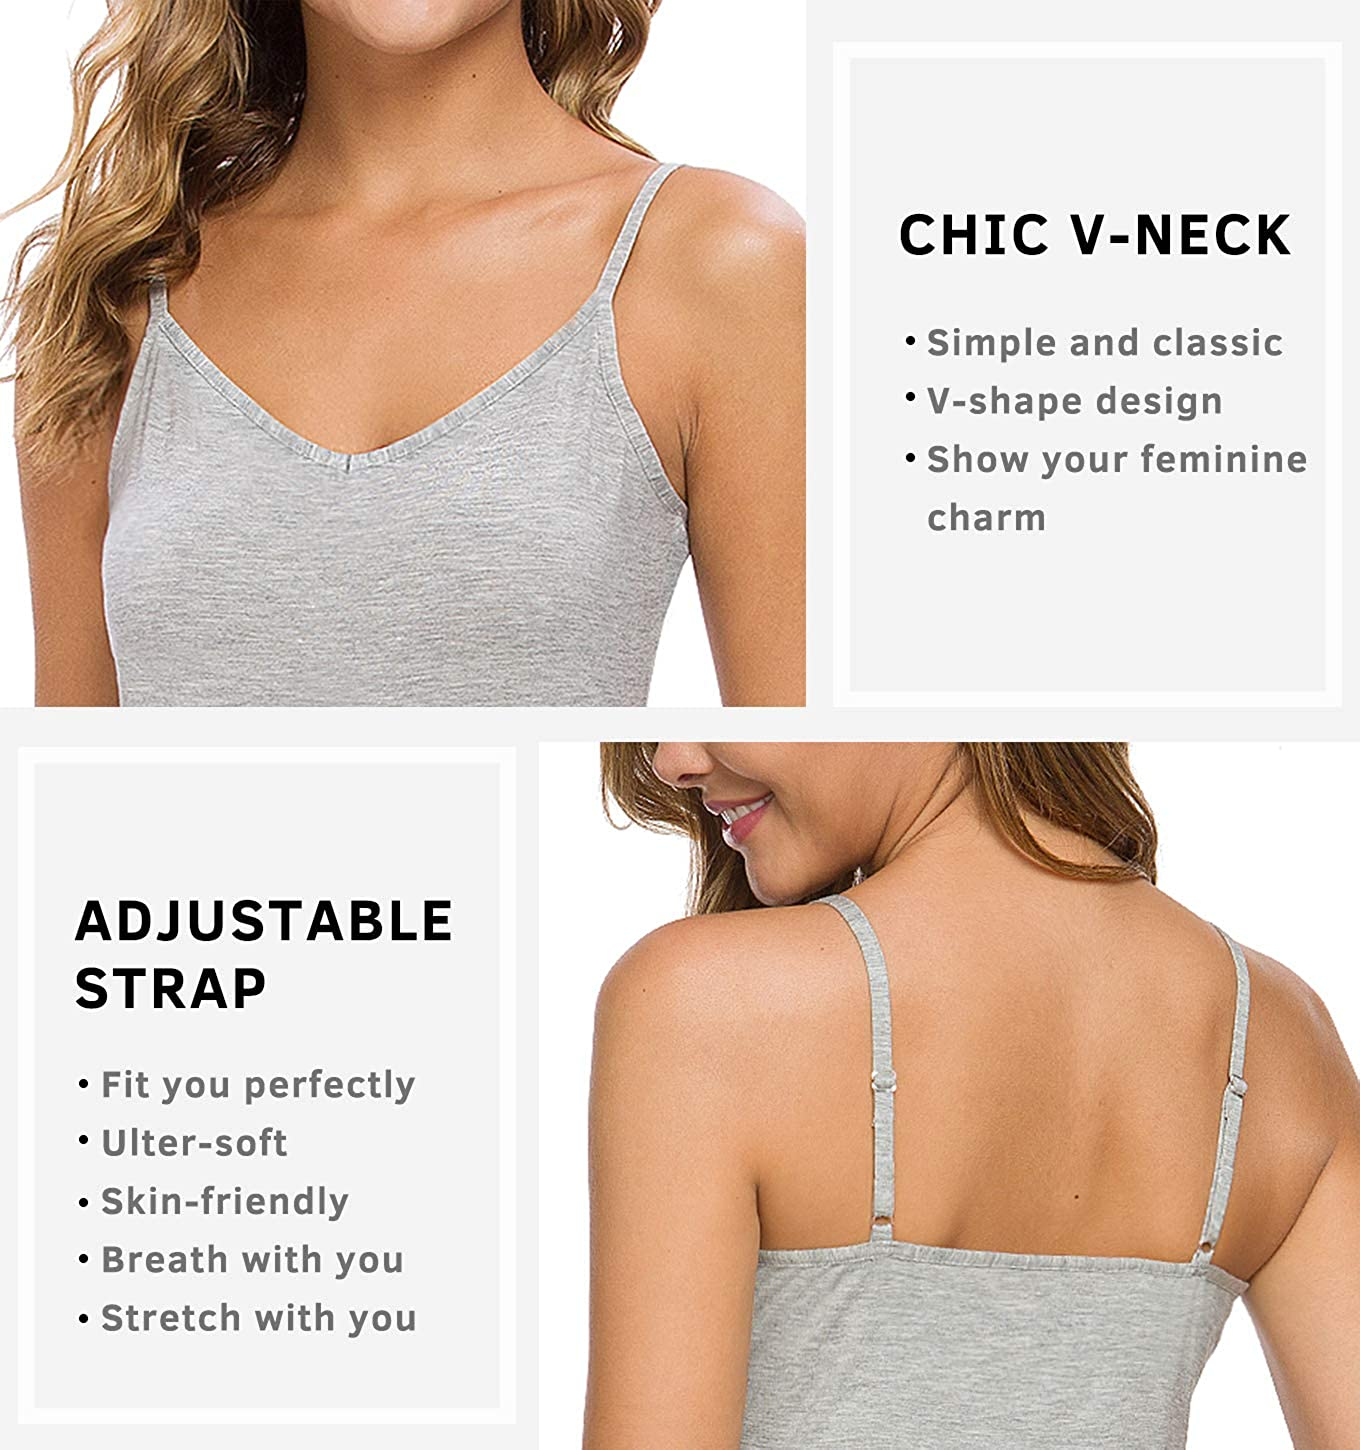 Xelky Womens V Neck Camisole Lightweight Tank Tops Adjustable Spaghetti Strap Undershirts Stretch Soft Plain cami 4 Pack S-XL